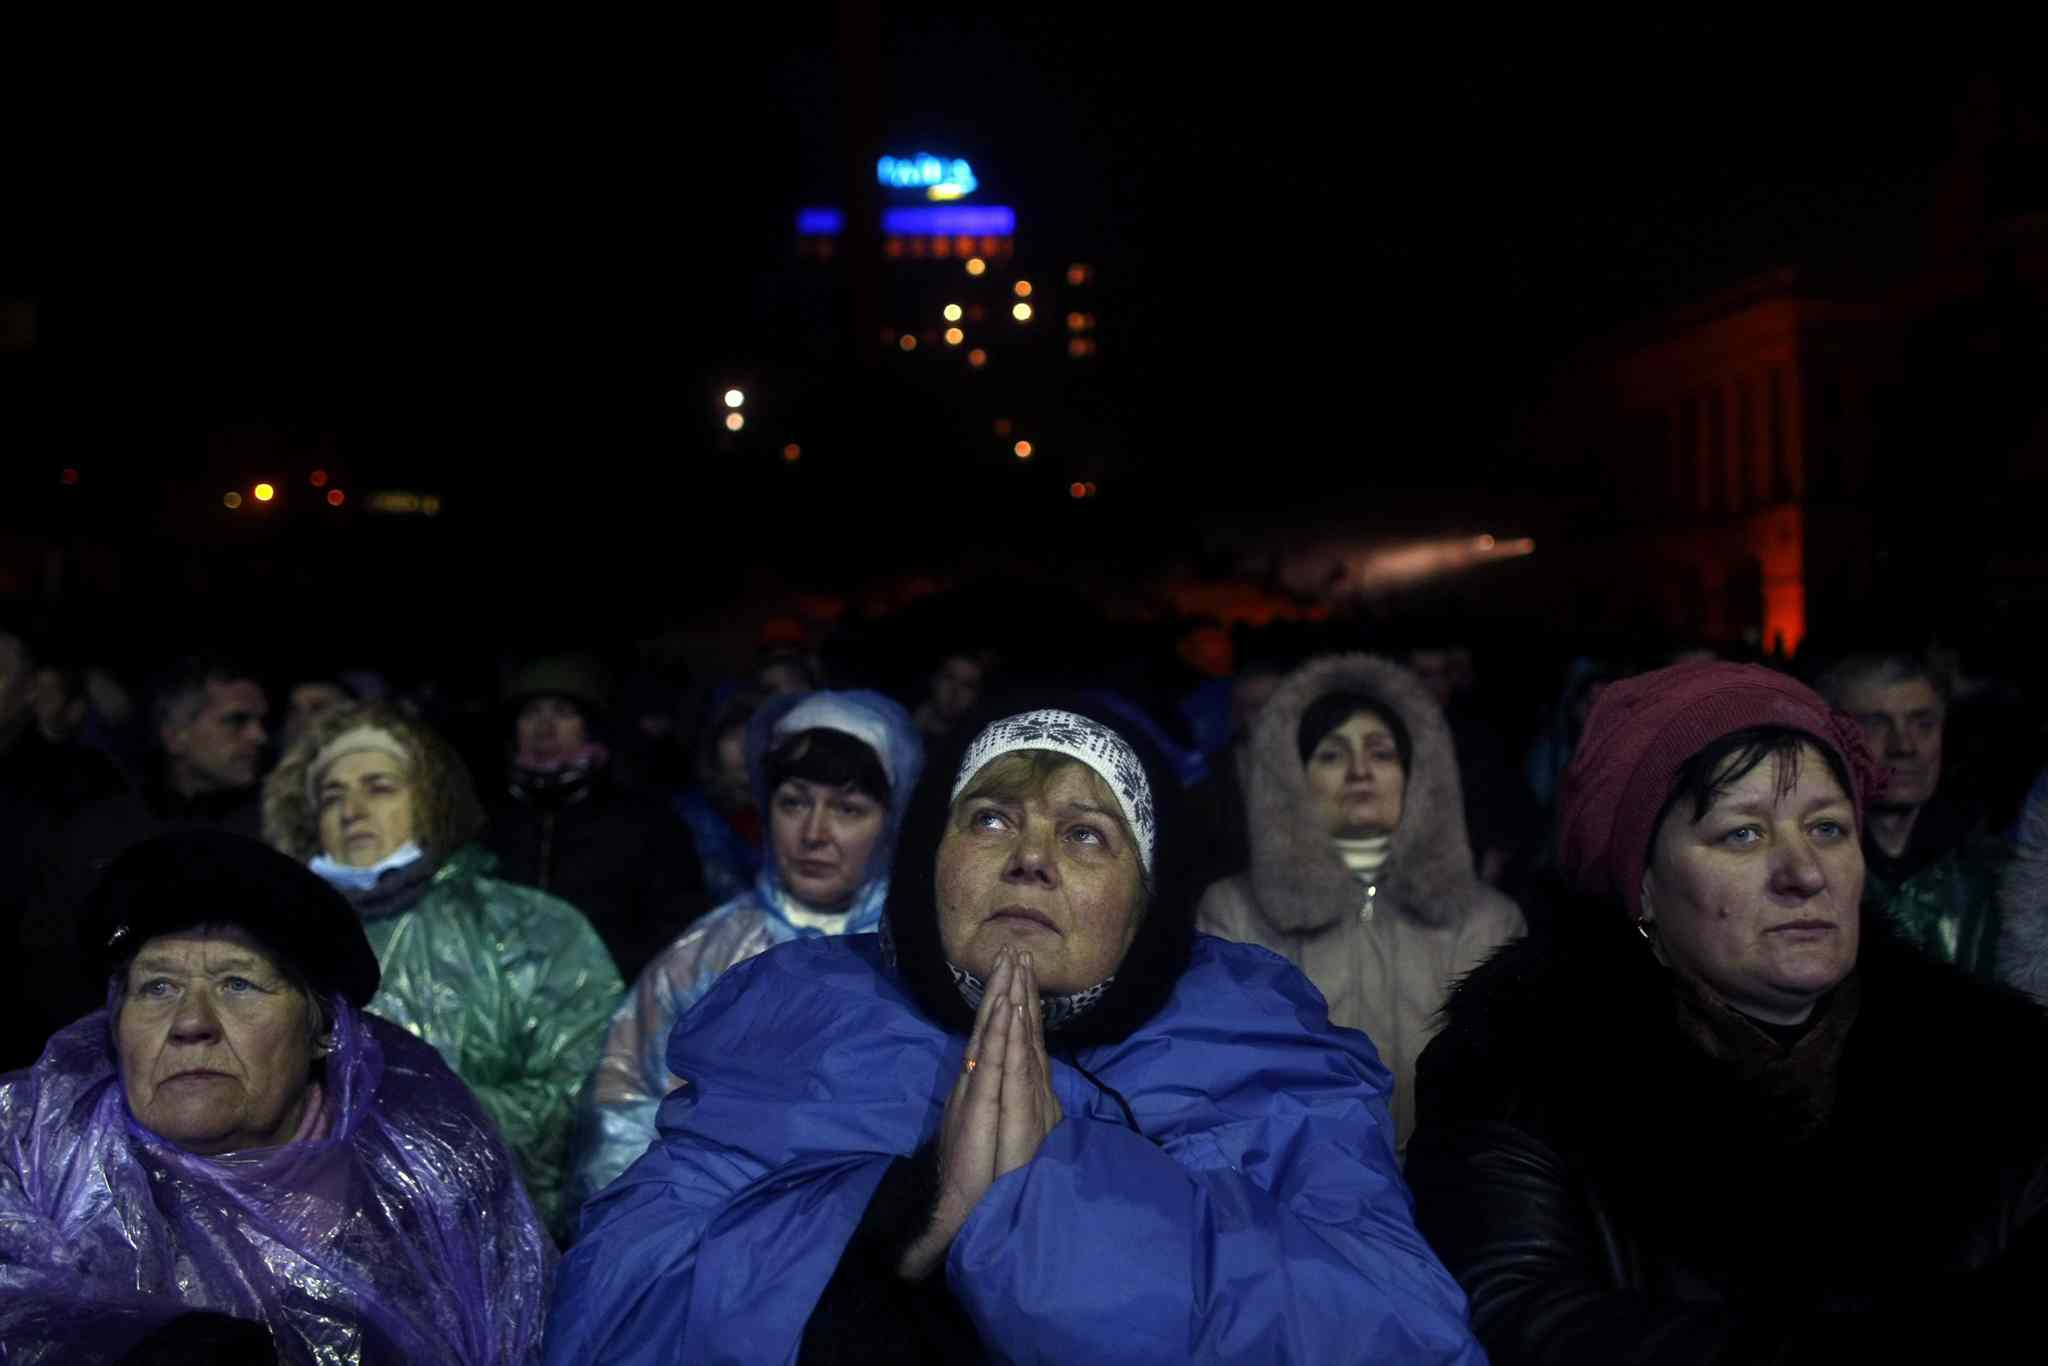 Anti-government protesters pause in prayer at Independence Square in Kyiv, Ukraine on Thursday. Ukraine's protest leaders and the president they aim to oust called a truce Wednesday, just hours after the military raised fears of a widespread crackdown with a vow to defeat